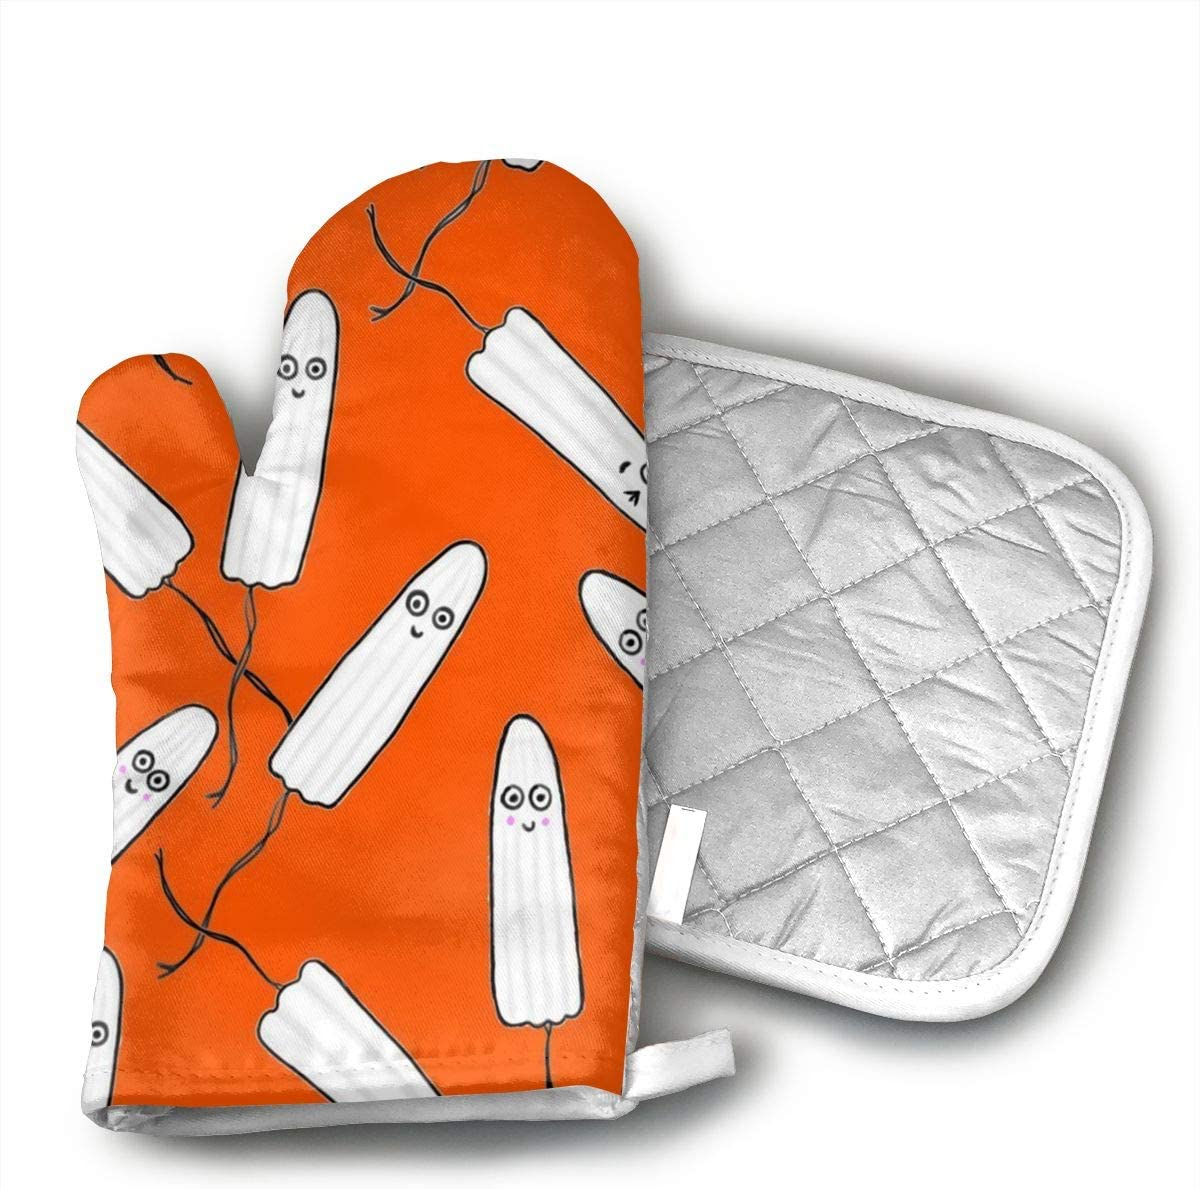 Teuwia Kawaii Tampons Orange Oven Mitts and Pot Holders Baking Oven Gloves Hot Pads Set Heat Resistant for Finger Hand Wrist Protection